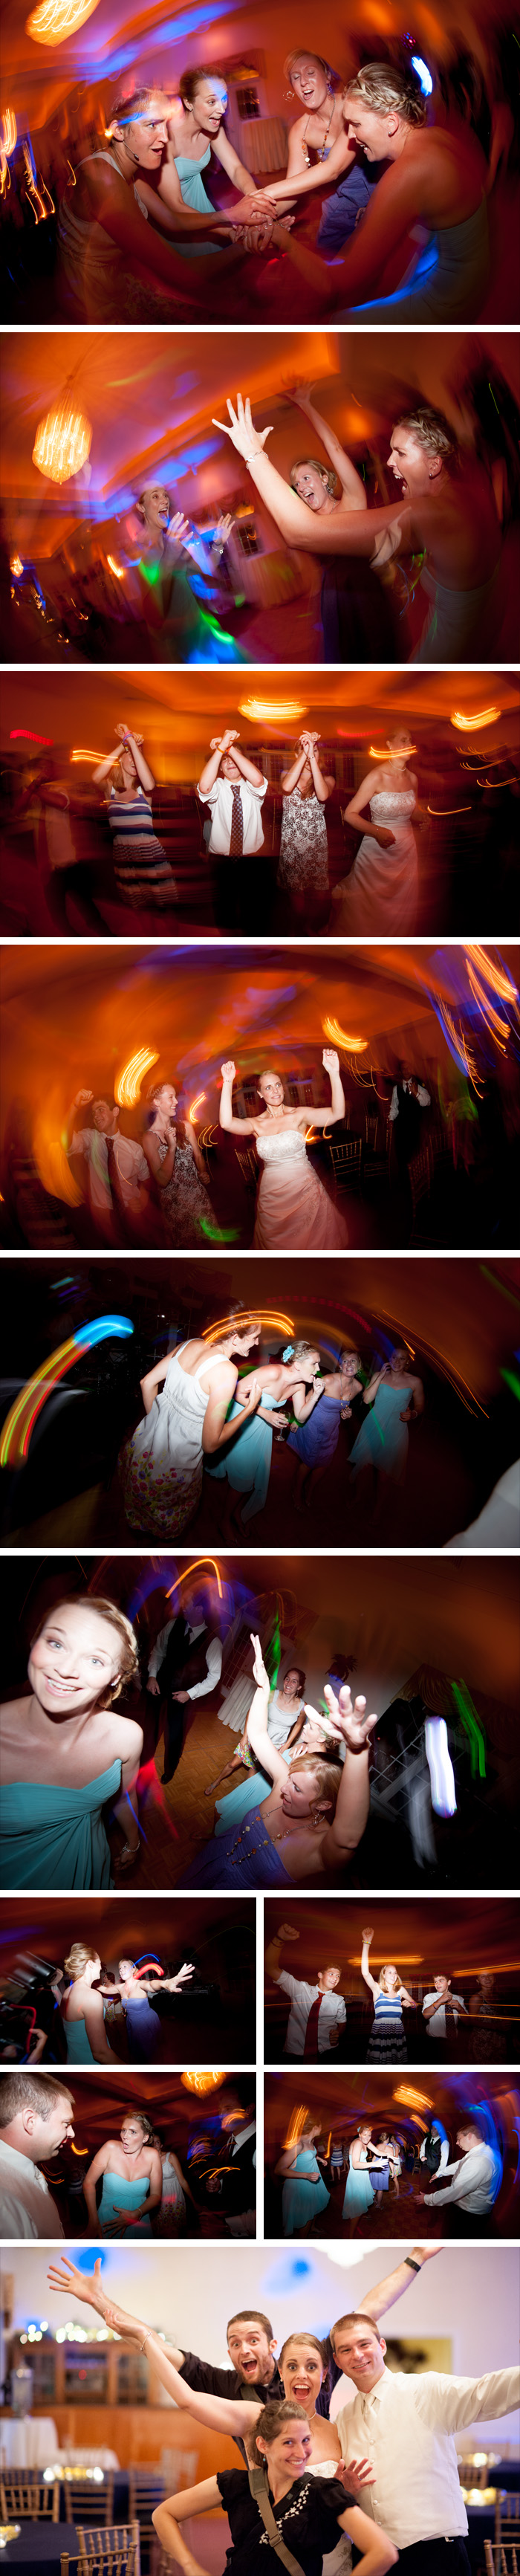 dancing Sarah + Alden | Louisburg, NC Wedding